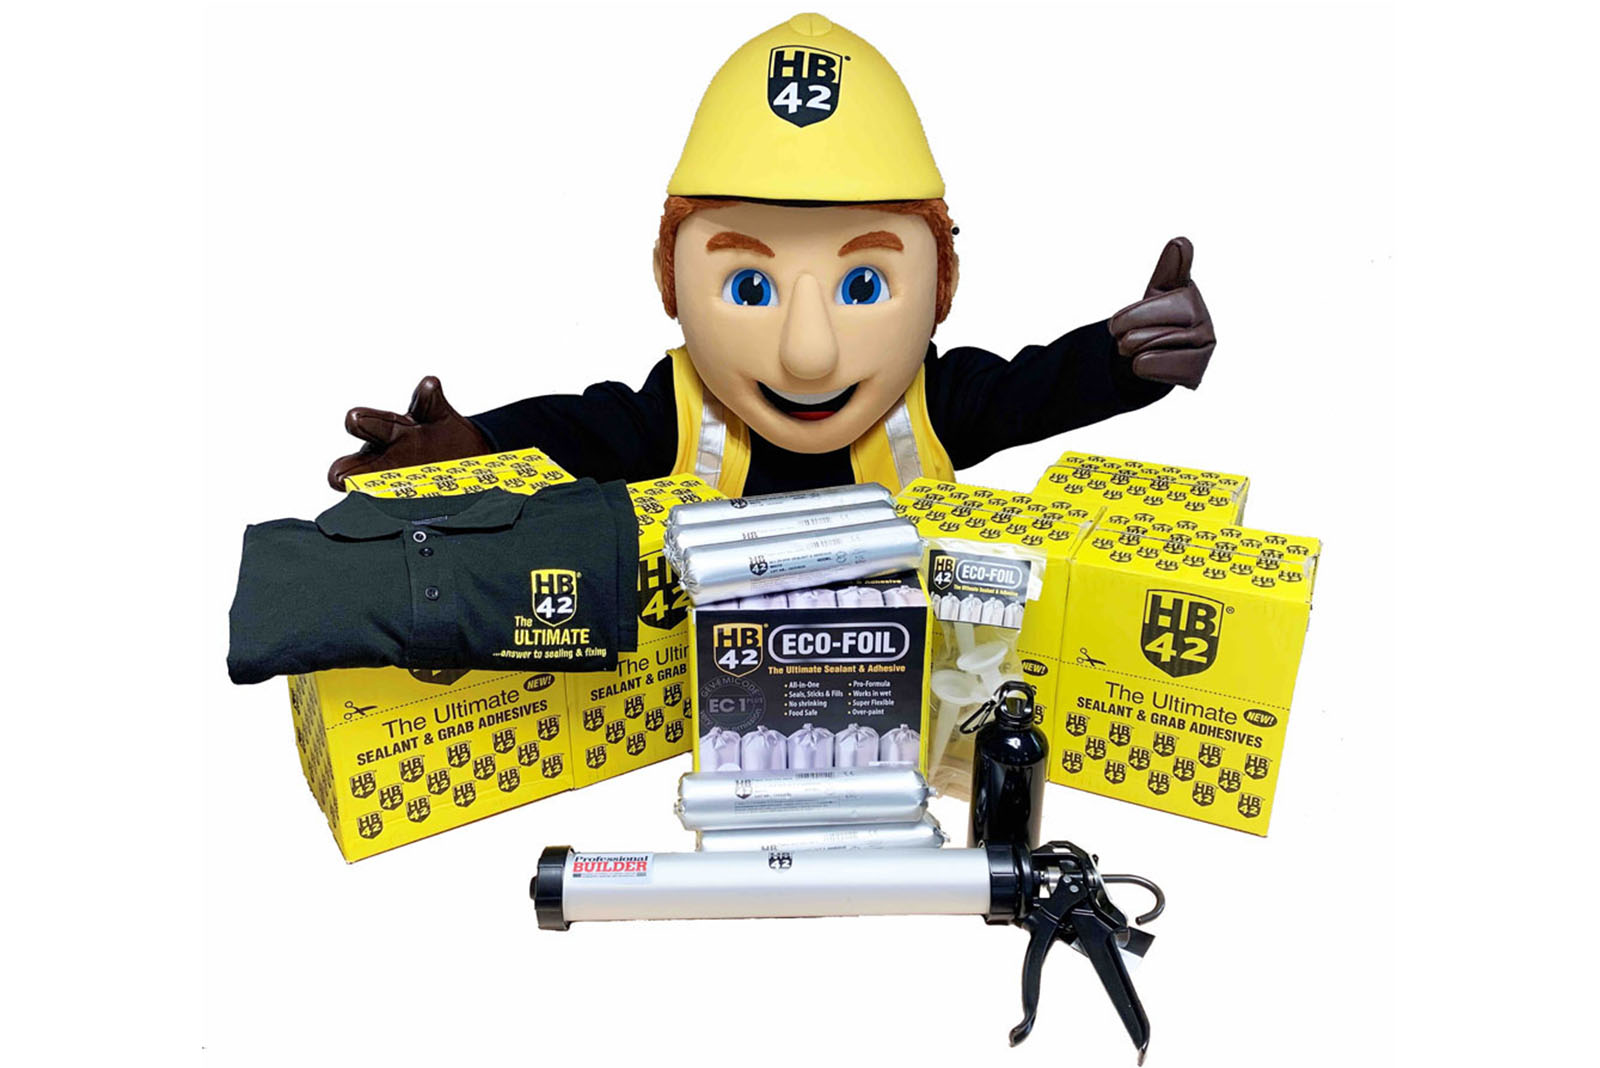 Win a HB42 'Eco-Foil' Christmas package